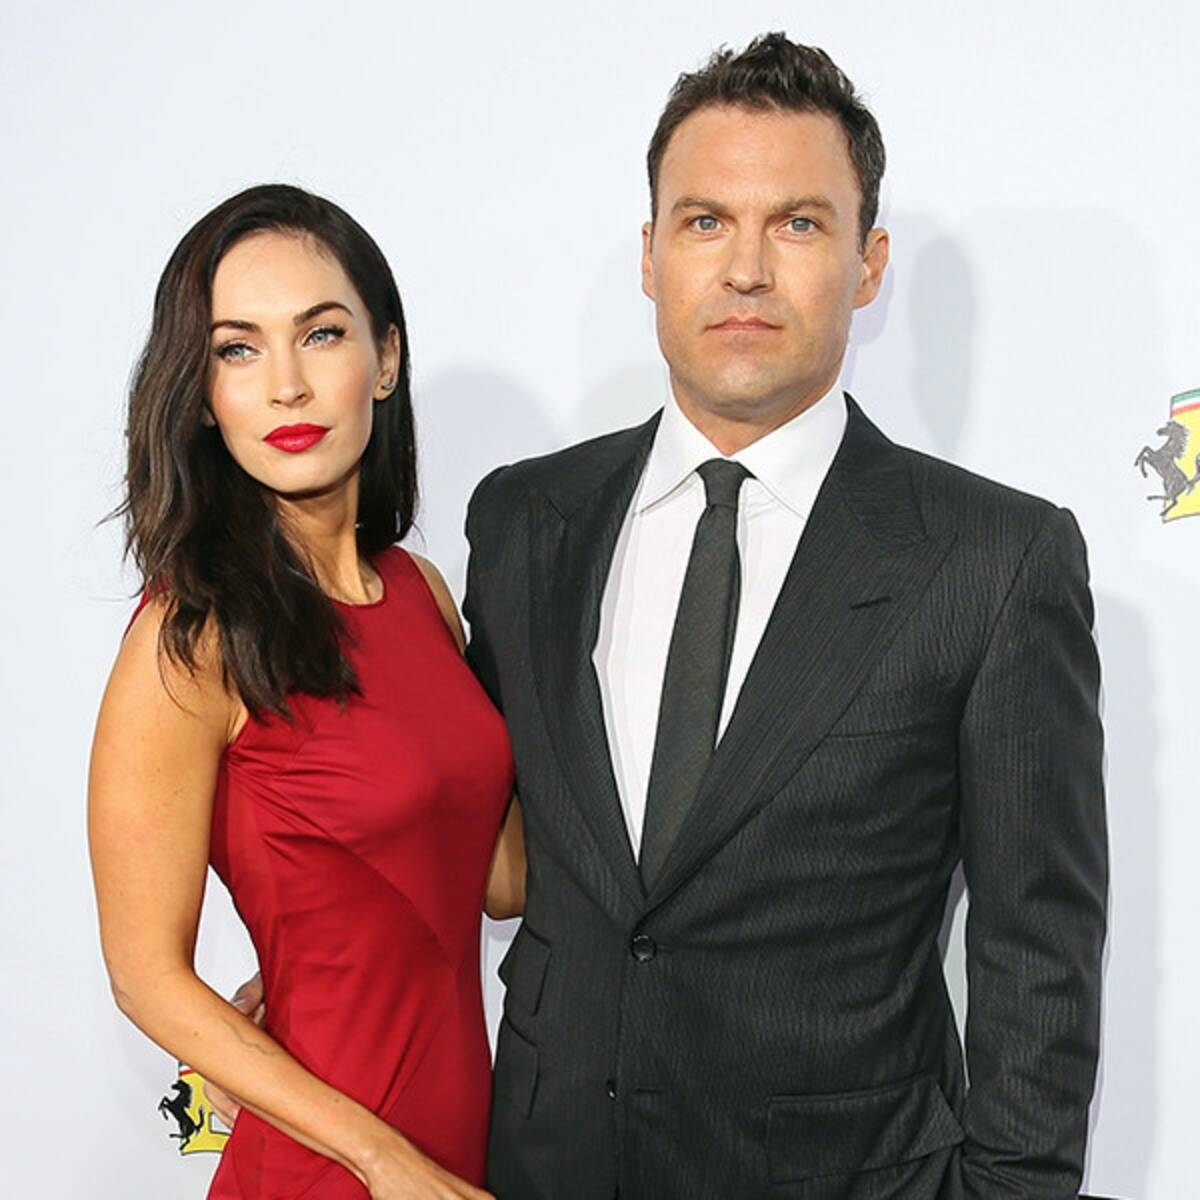 Brian Austin Green Requests Joint Custody Of His Sons With Ex-Wife Megan Fox In New Court Documents – Details!